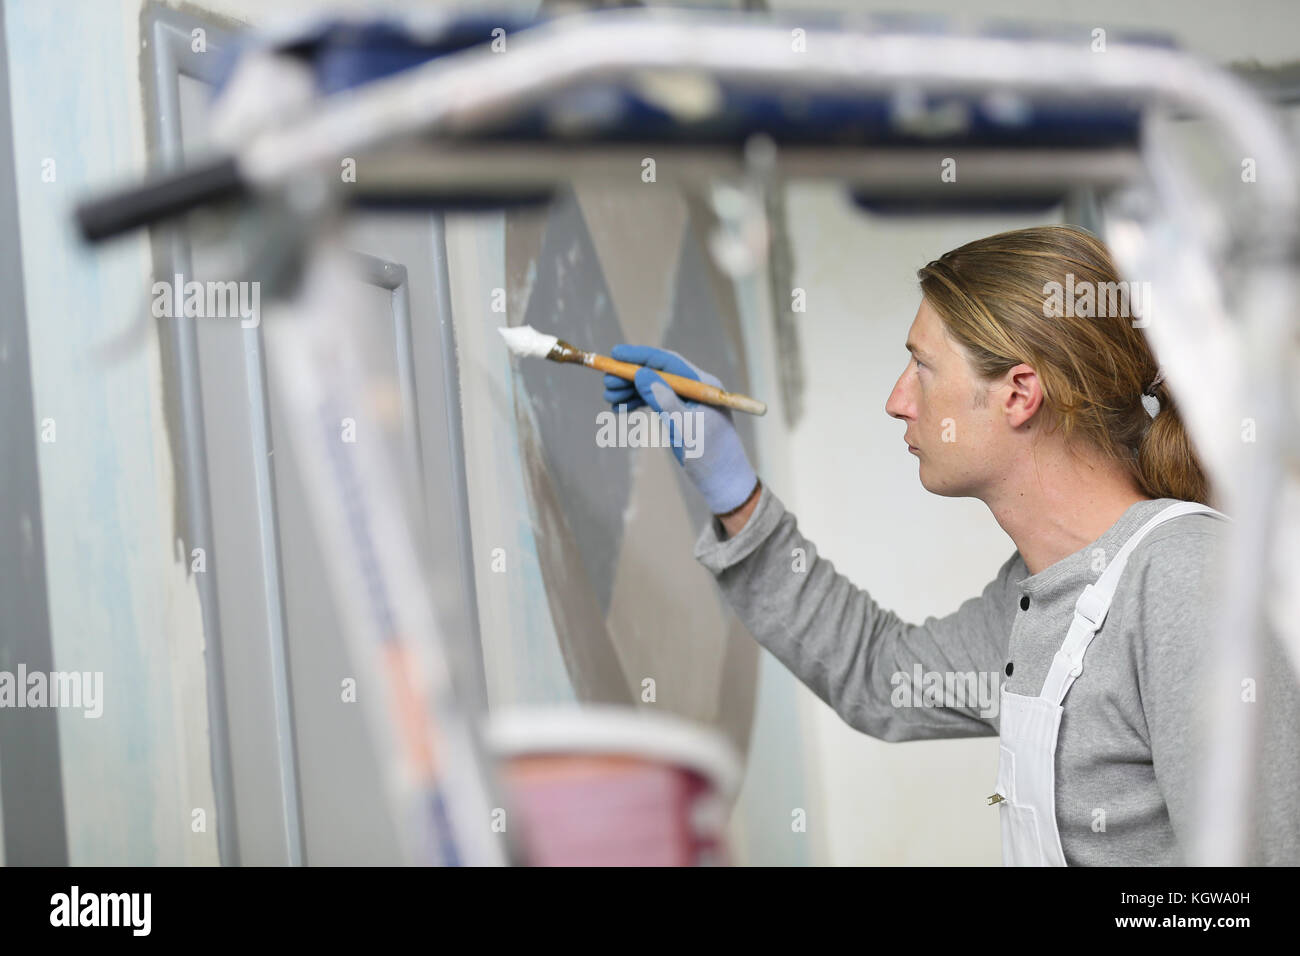 Professional painter painting room wall - Stock Image